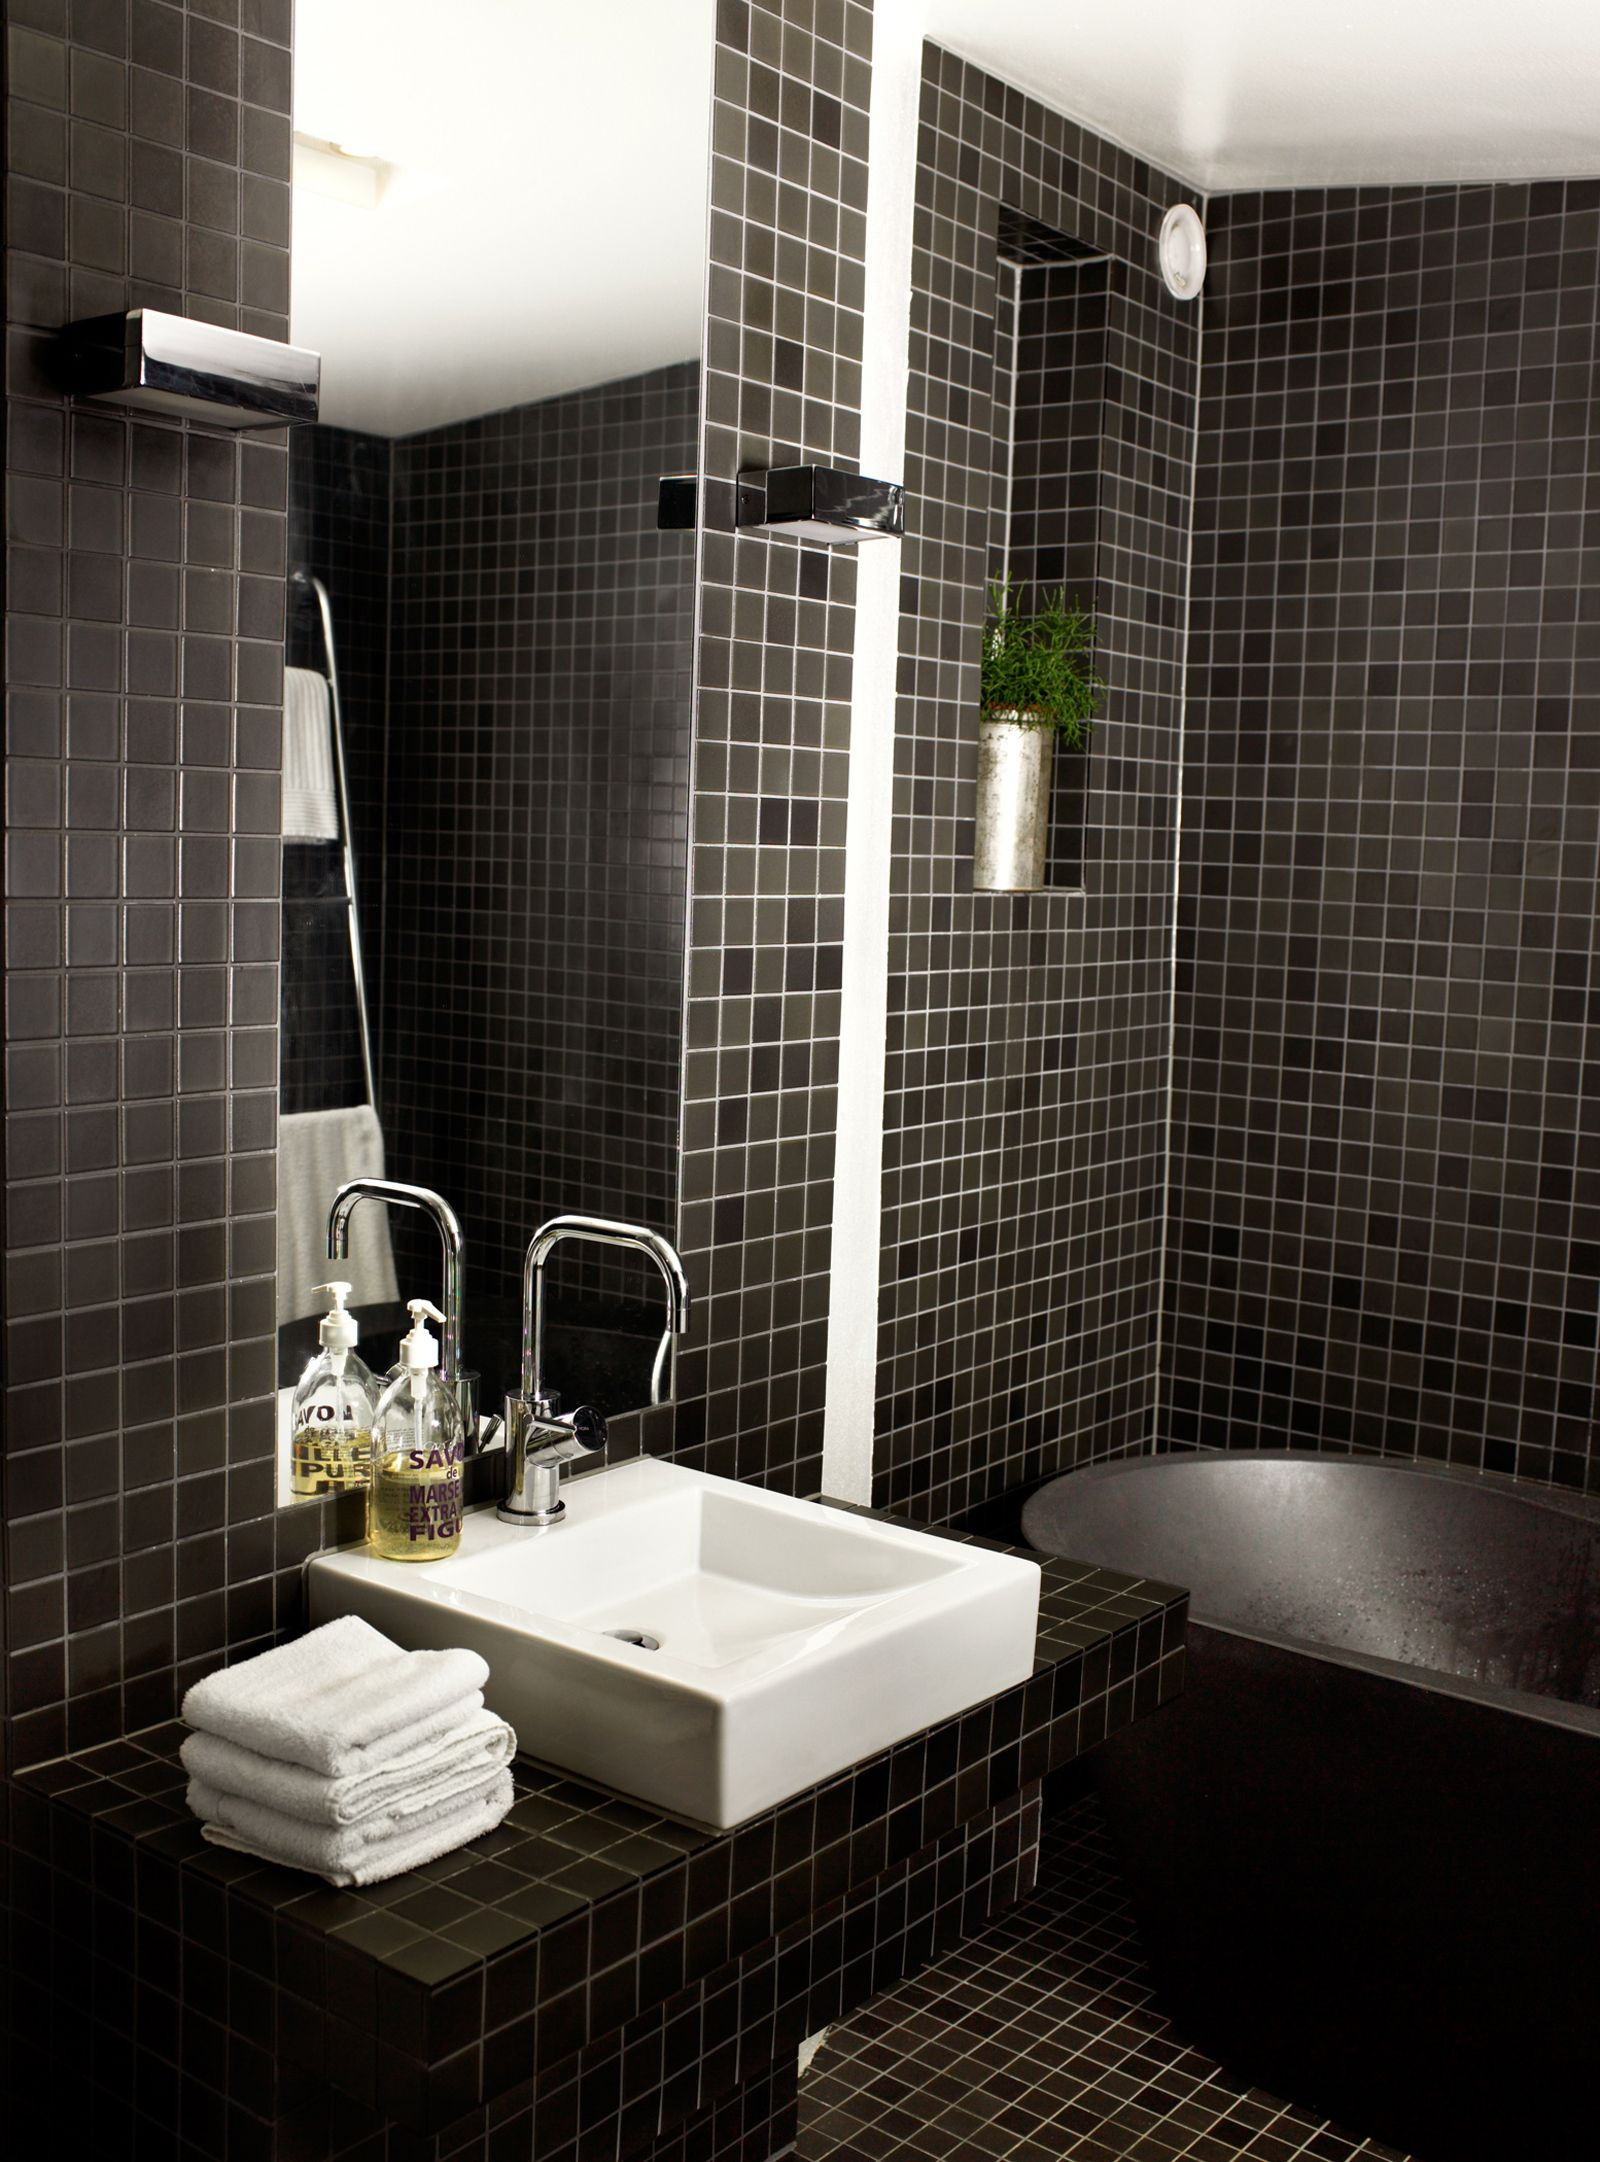 How To Bathrooms for Small Spaces by Kelsey Keith (mit